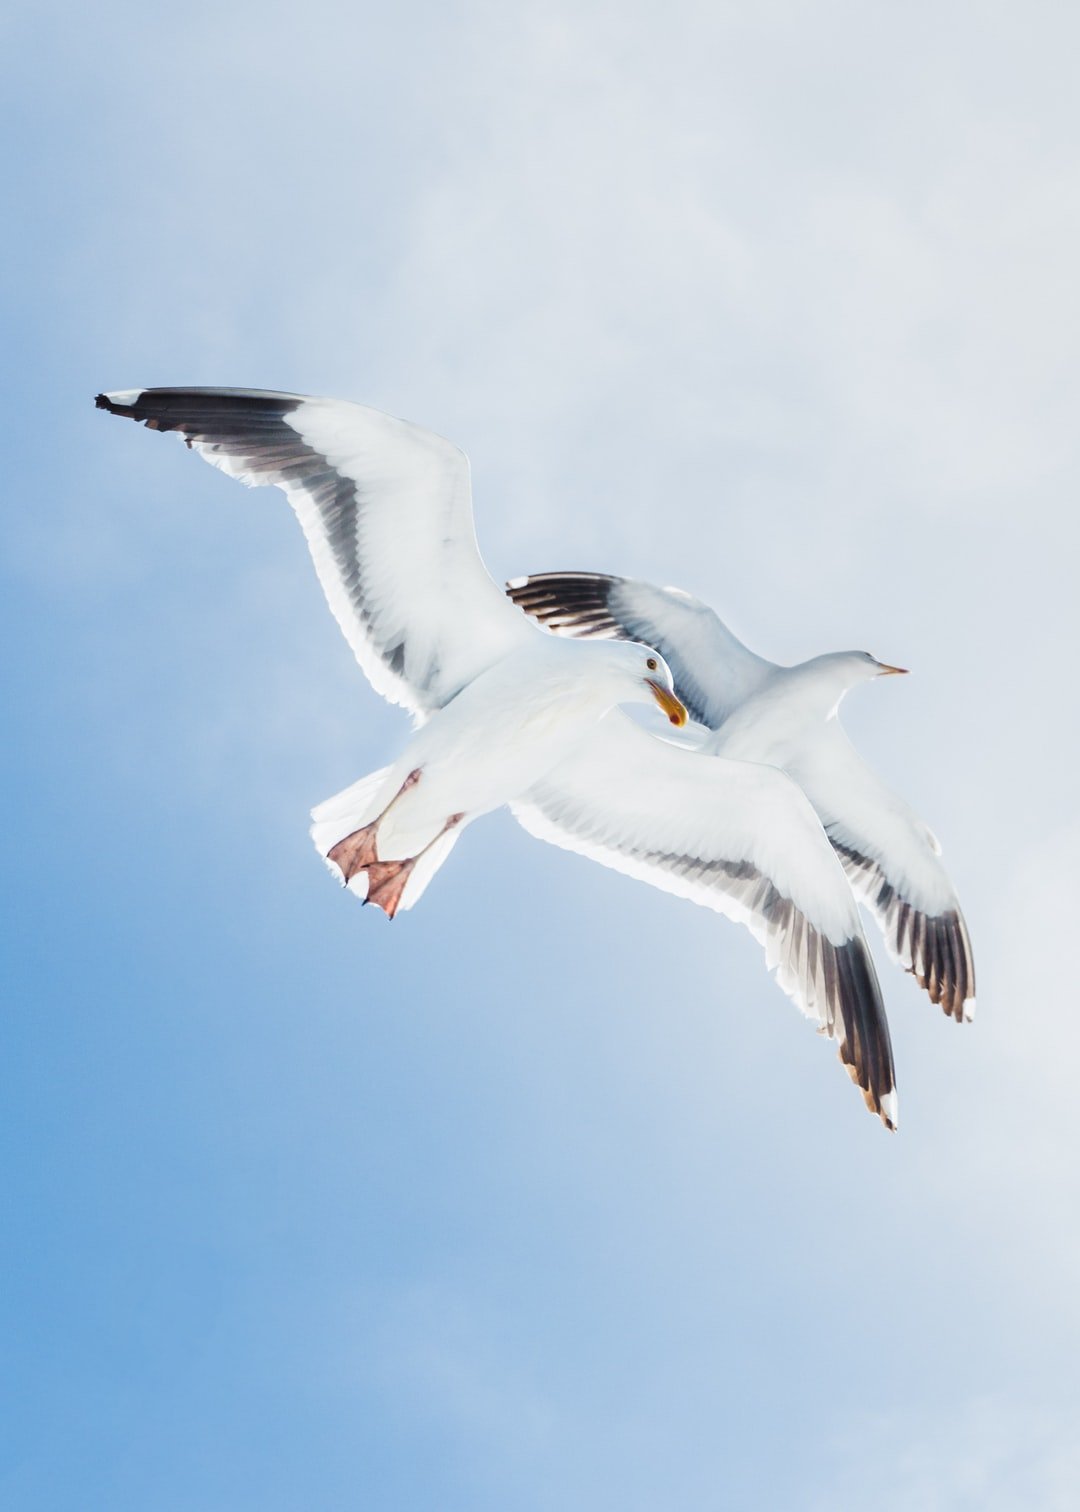 I was on a fishing boat off the coast of Southern California when I noticed seagulls taking turns gliding into the boat's slipstream just above the cabin. As I pulled up to shoot, a pair of them floated above me, catching an effortless ride at 20 knots.